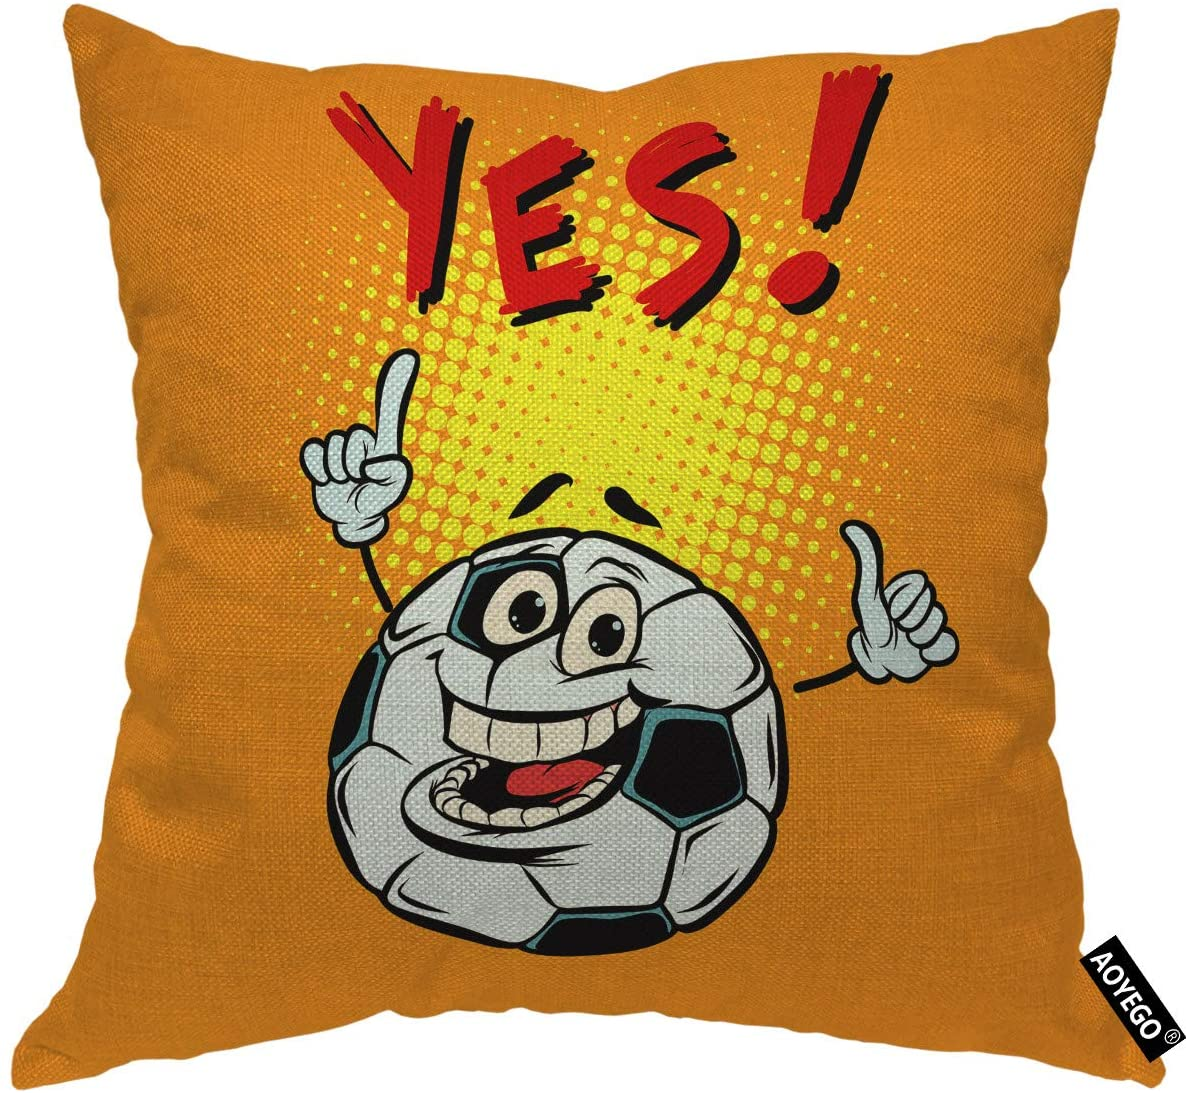 AOYEGO Football Throw Pillow Covers Cute Happy Smile Soccer Ball with Word Yes Doodle Polka Dot Pillow Cases 20x20 Inch Decorative Cushion Cotton Linen for Couch Chair Bedroom Orange